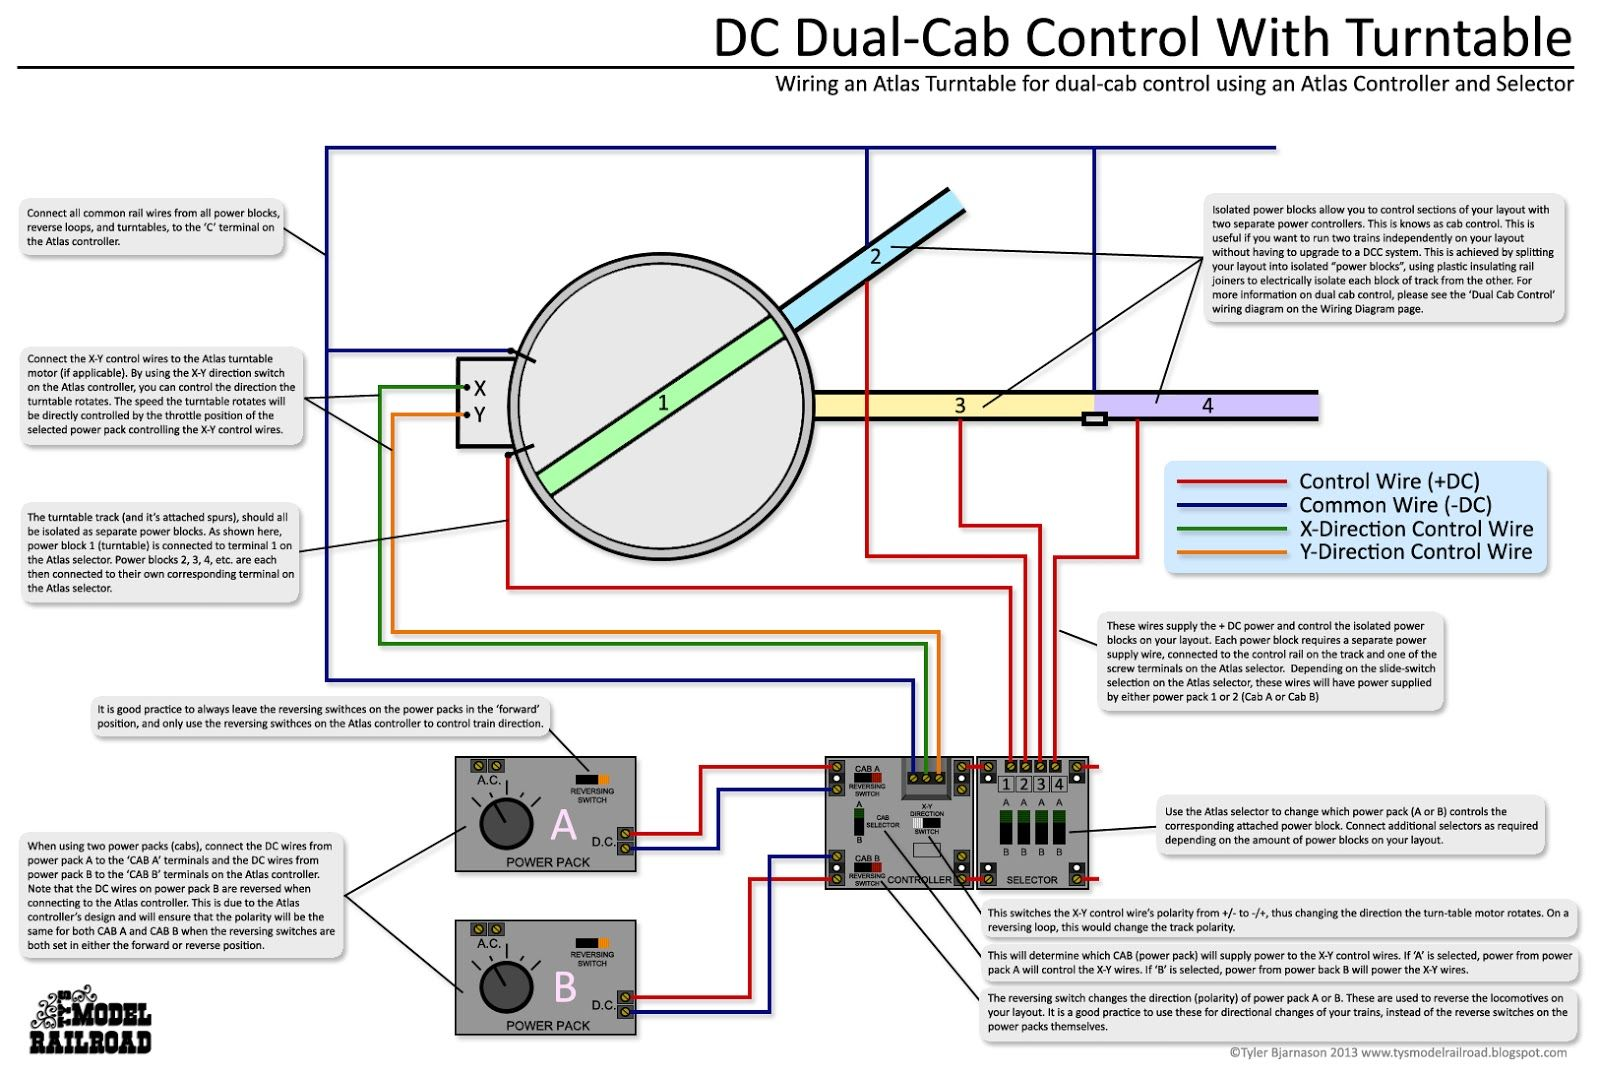 How to use dual cab control to power and operate a turntable and turntable  motor using an Atlas controller and Atlas selectors.